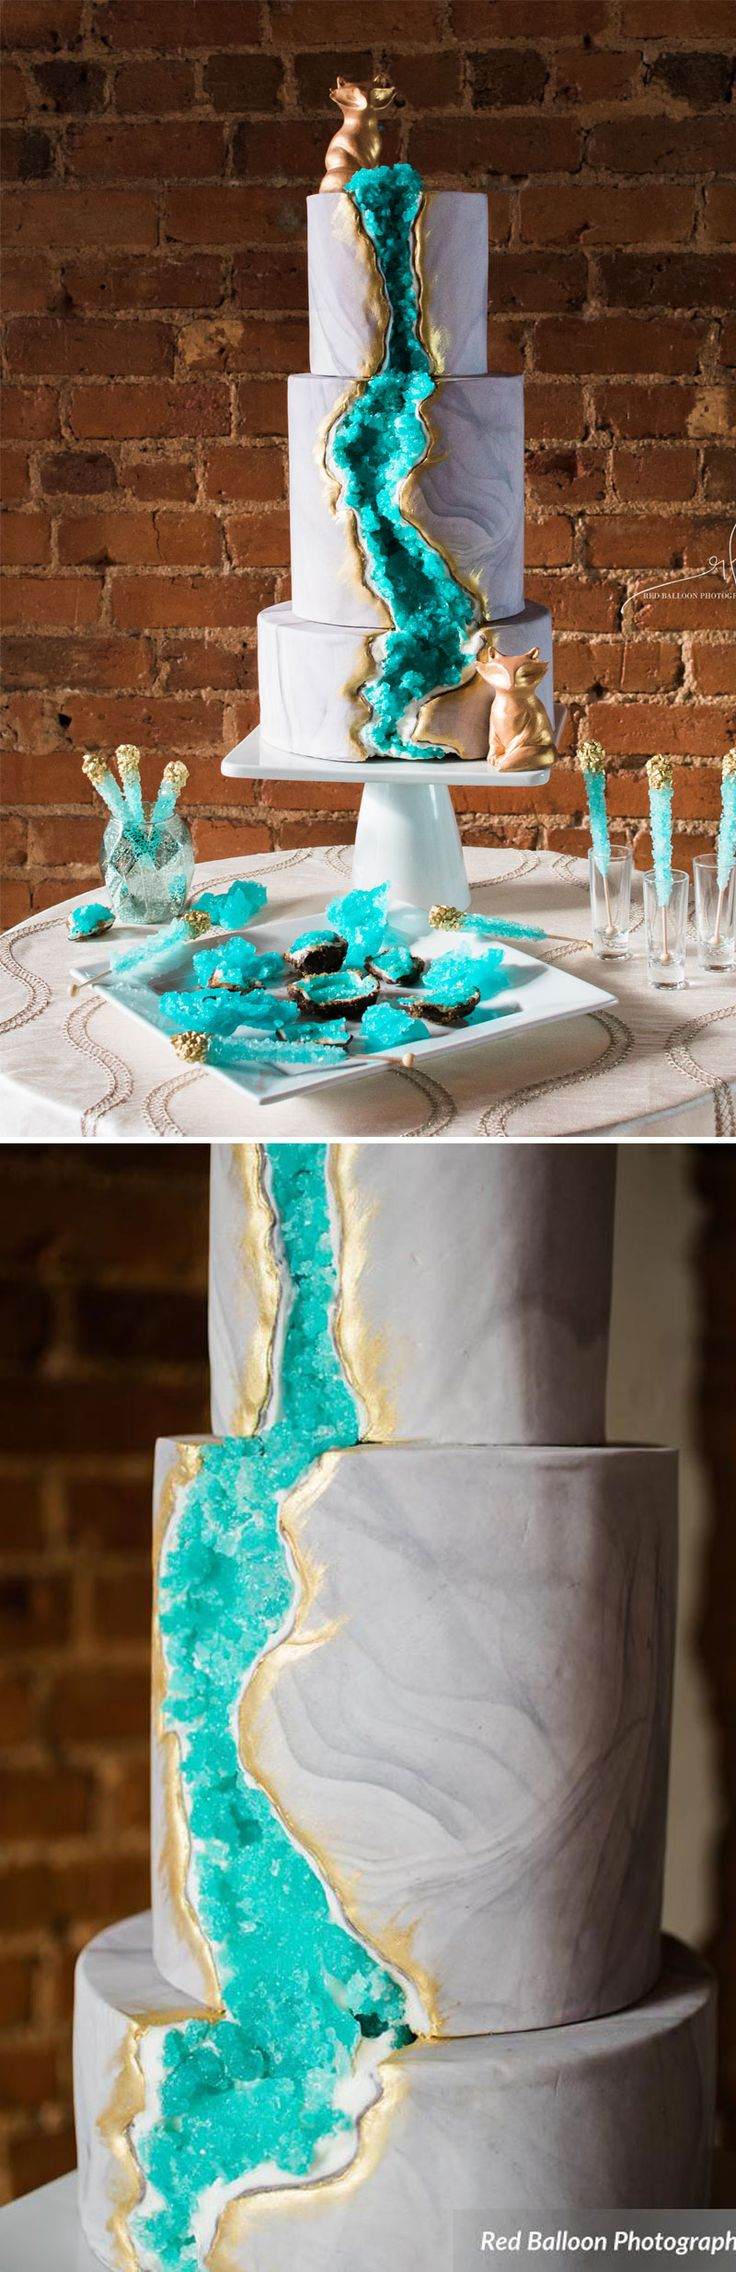 We love Three Tiers For Cake's take on the geode wedding cake trend. After all, that cascade of turquoise sugar rock is so vibrant and beautiful that it's enough to make any bride swoon!